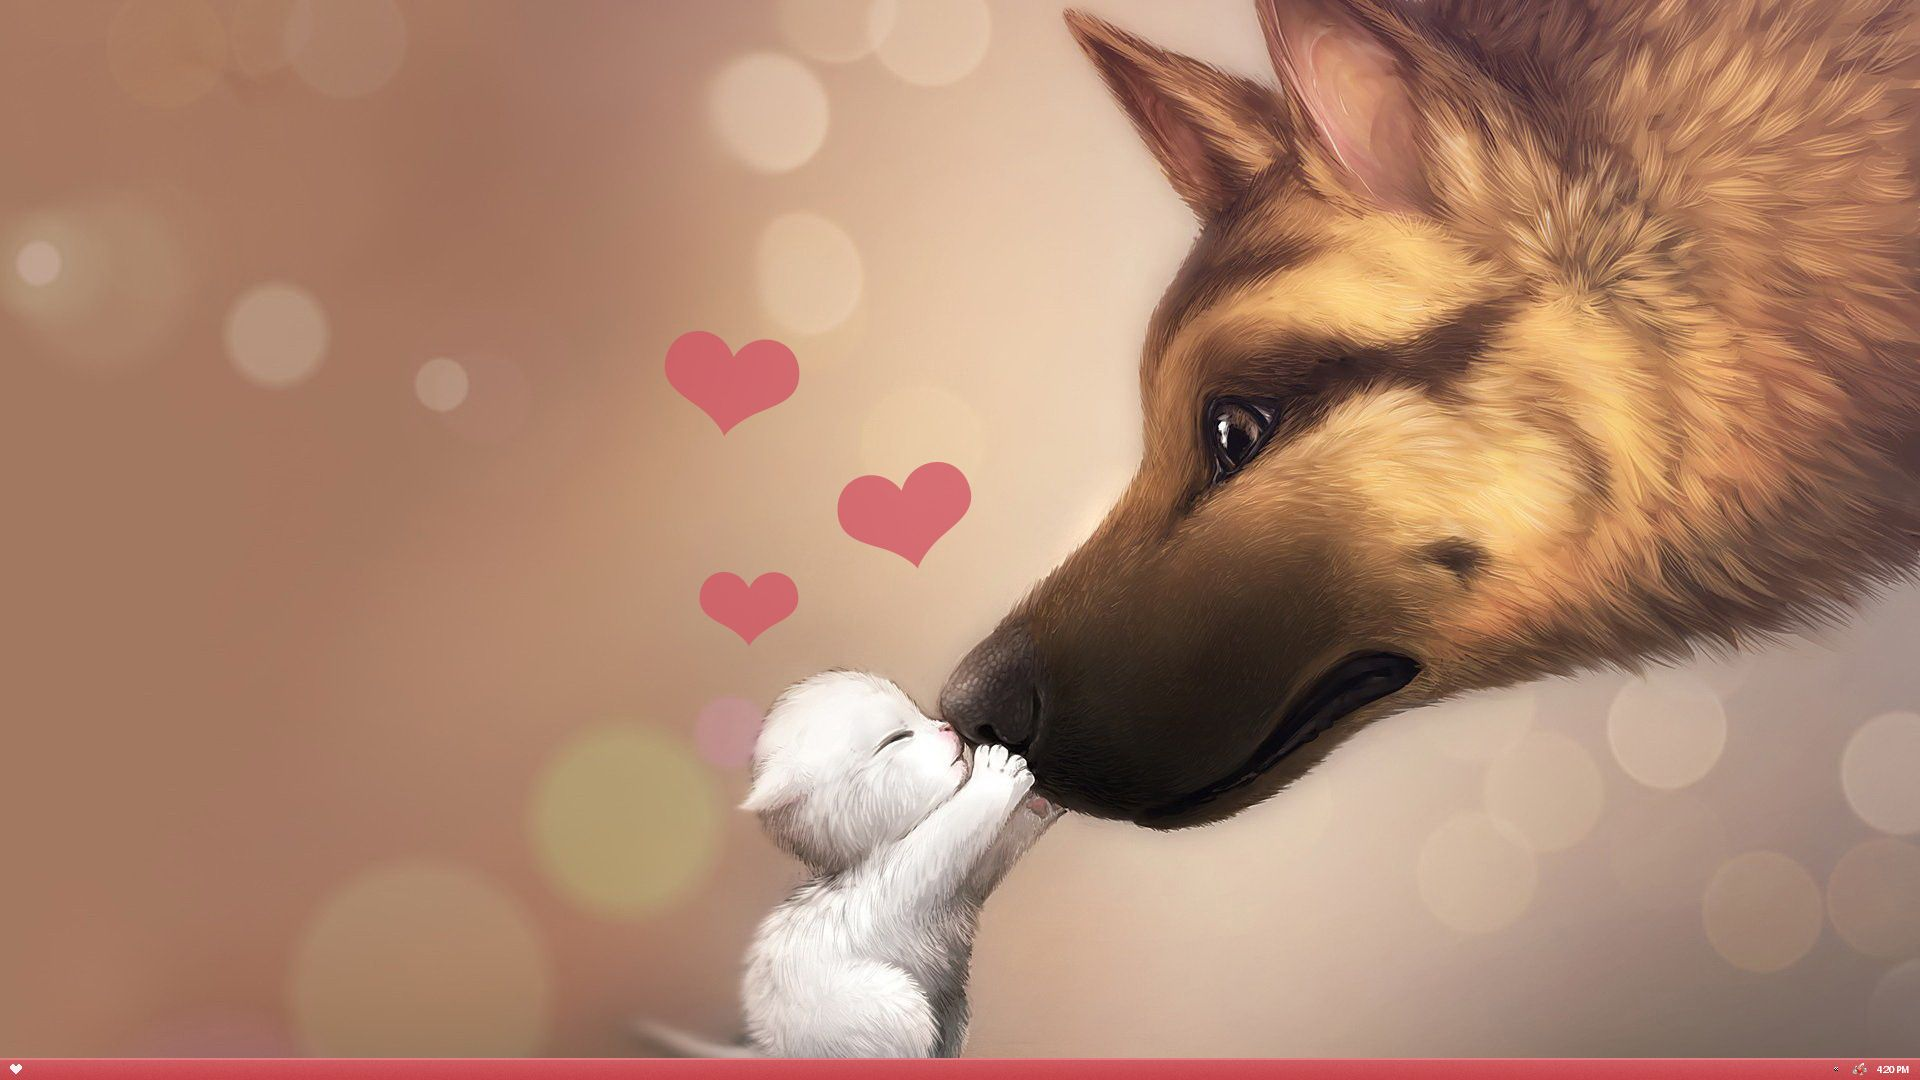 Valentines Day Dog Cat Love HD Wallpaper FullHDWpp   Full HD 1920x1080